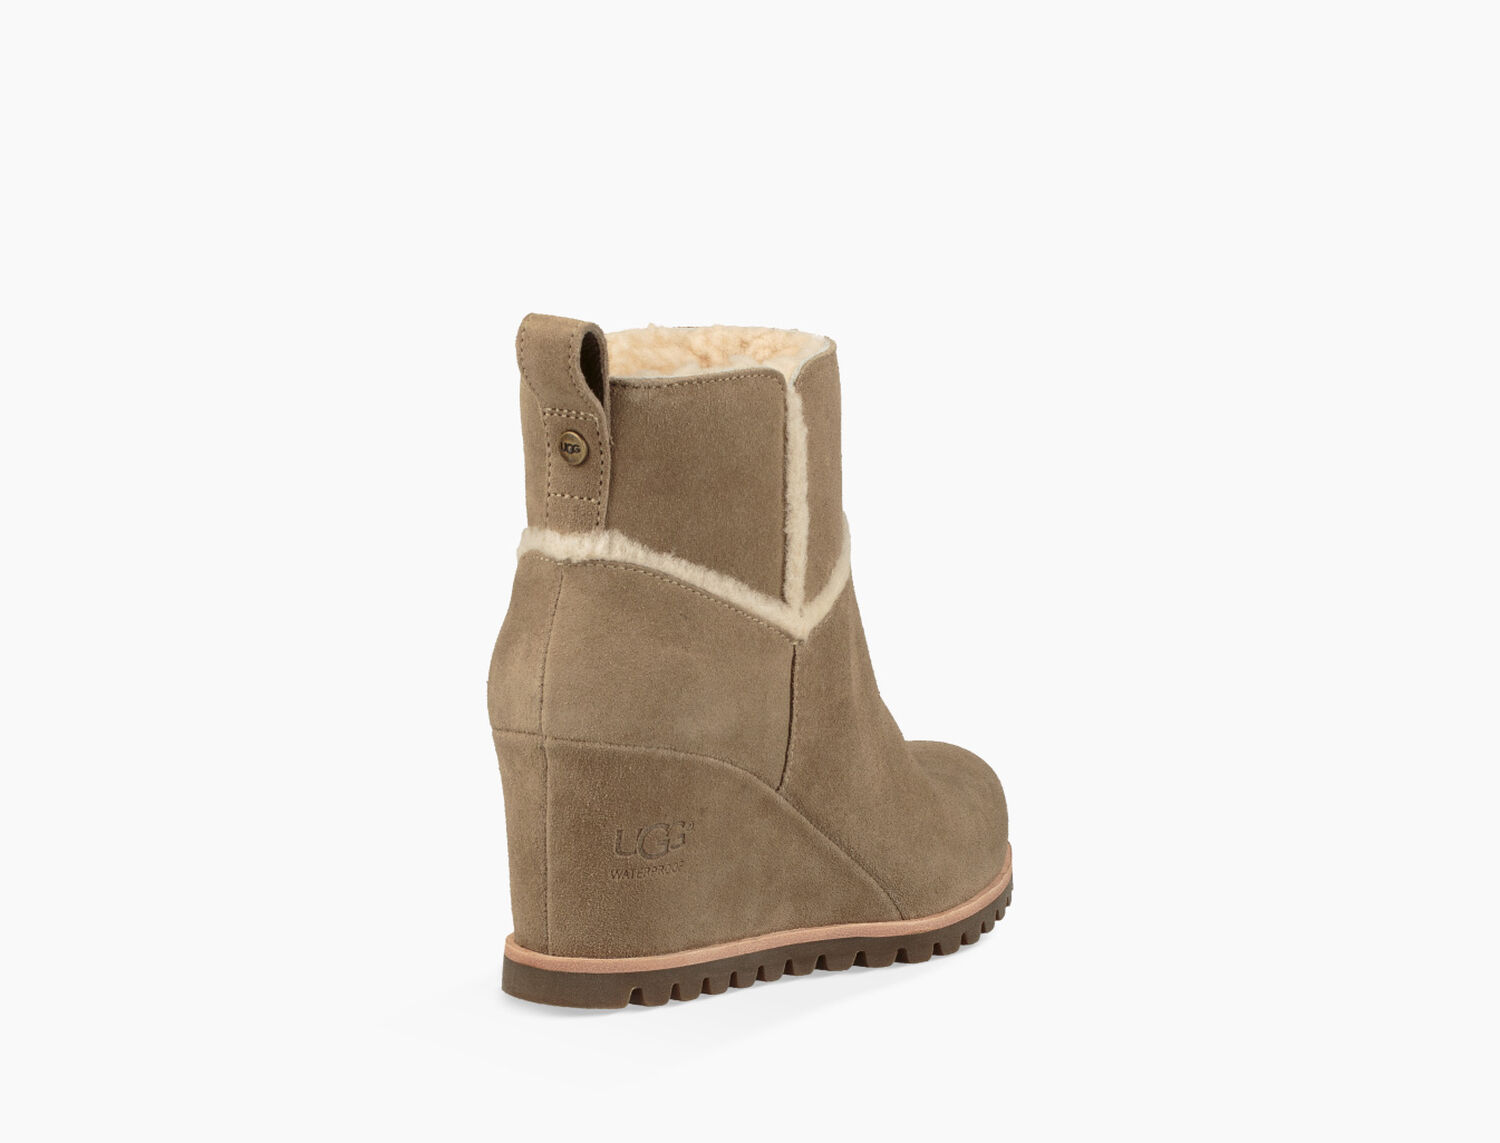 3f861e2d4b2 Women's Share this product Marte Boot